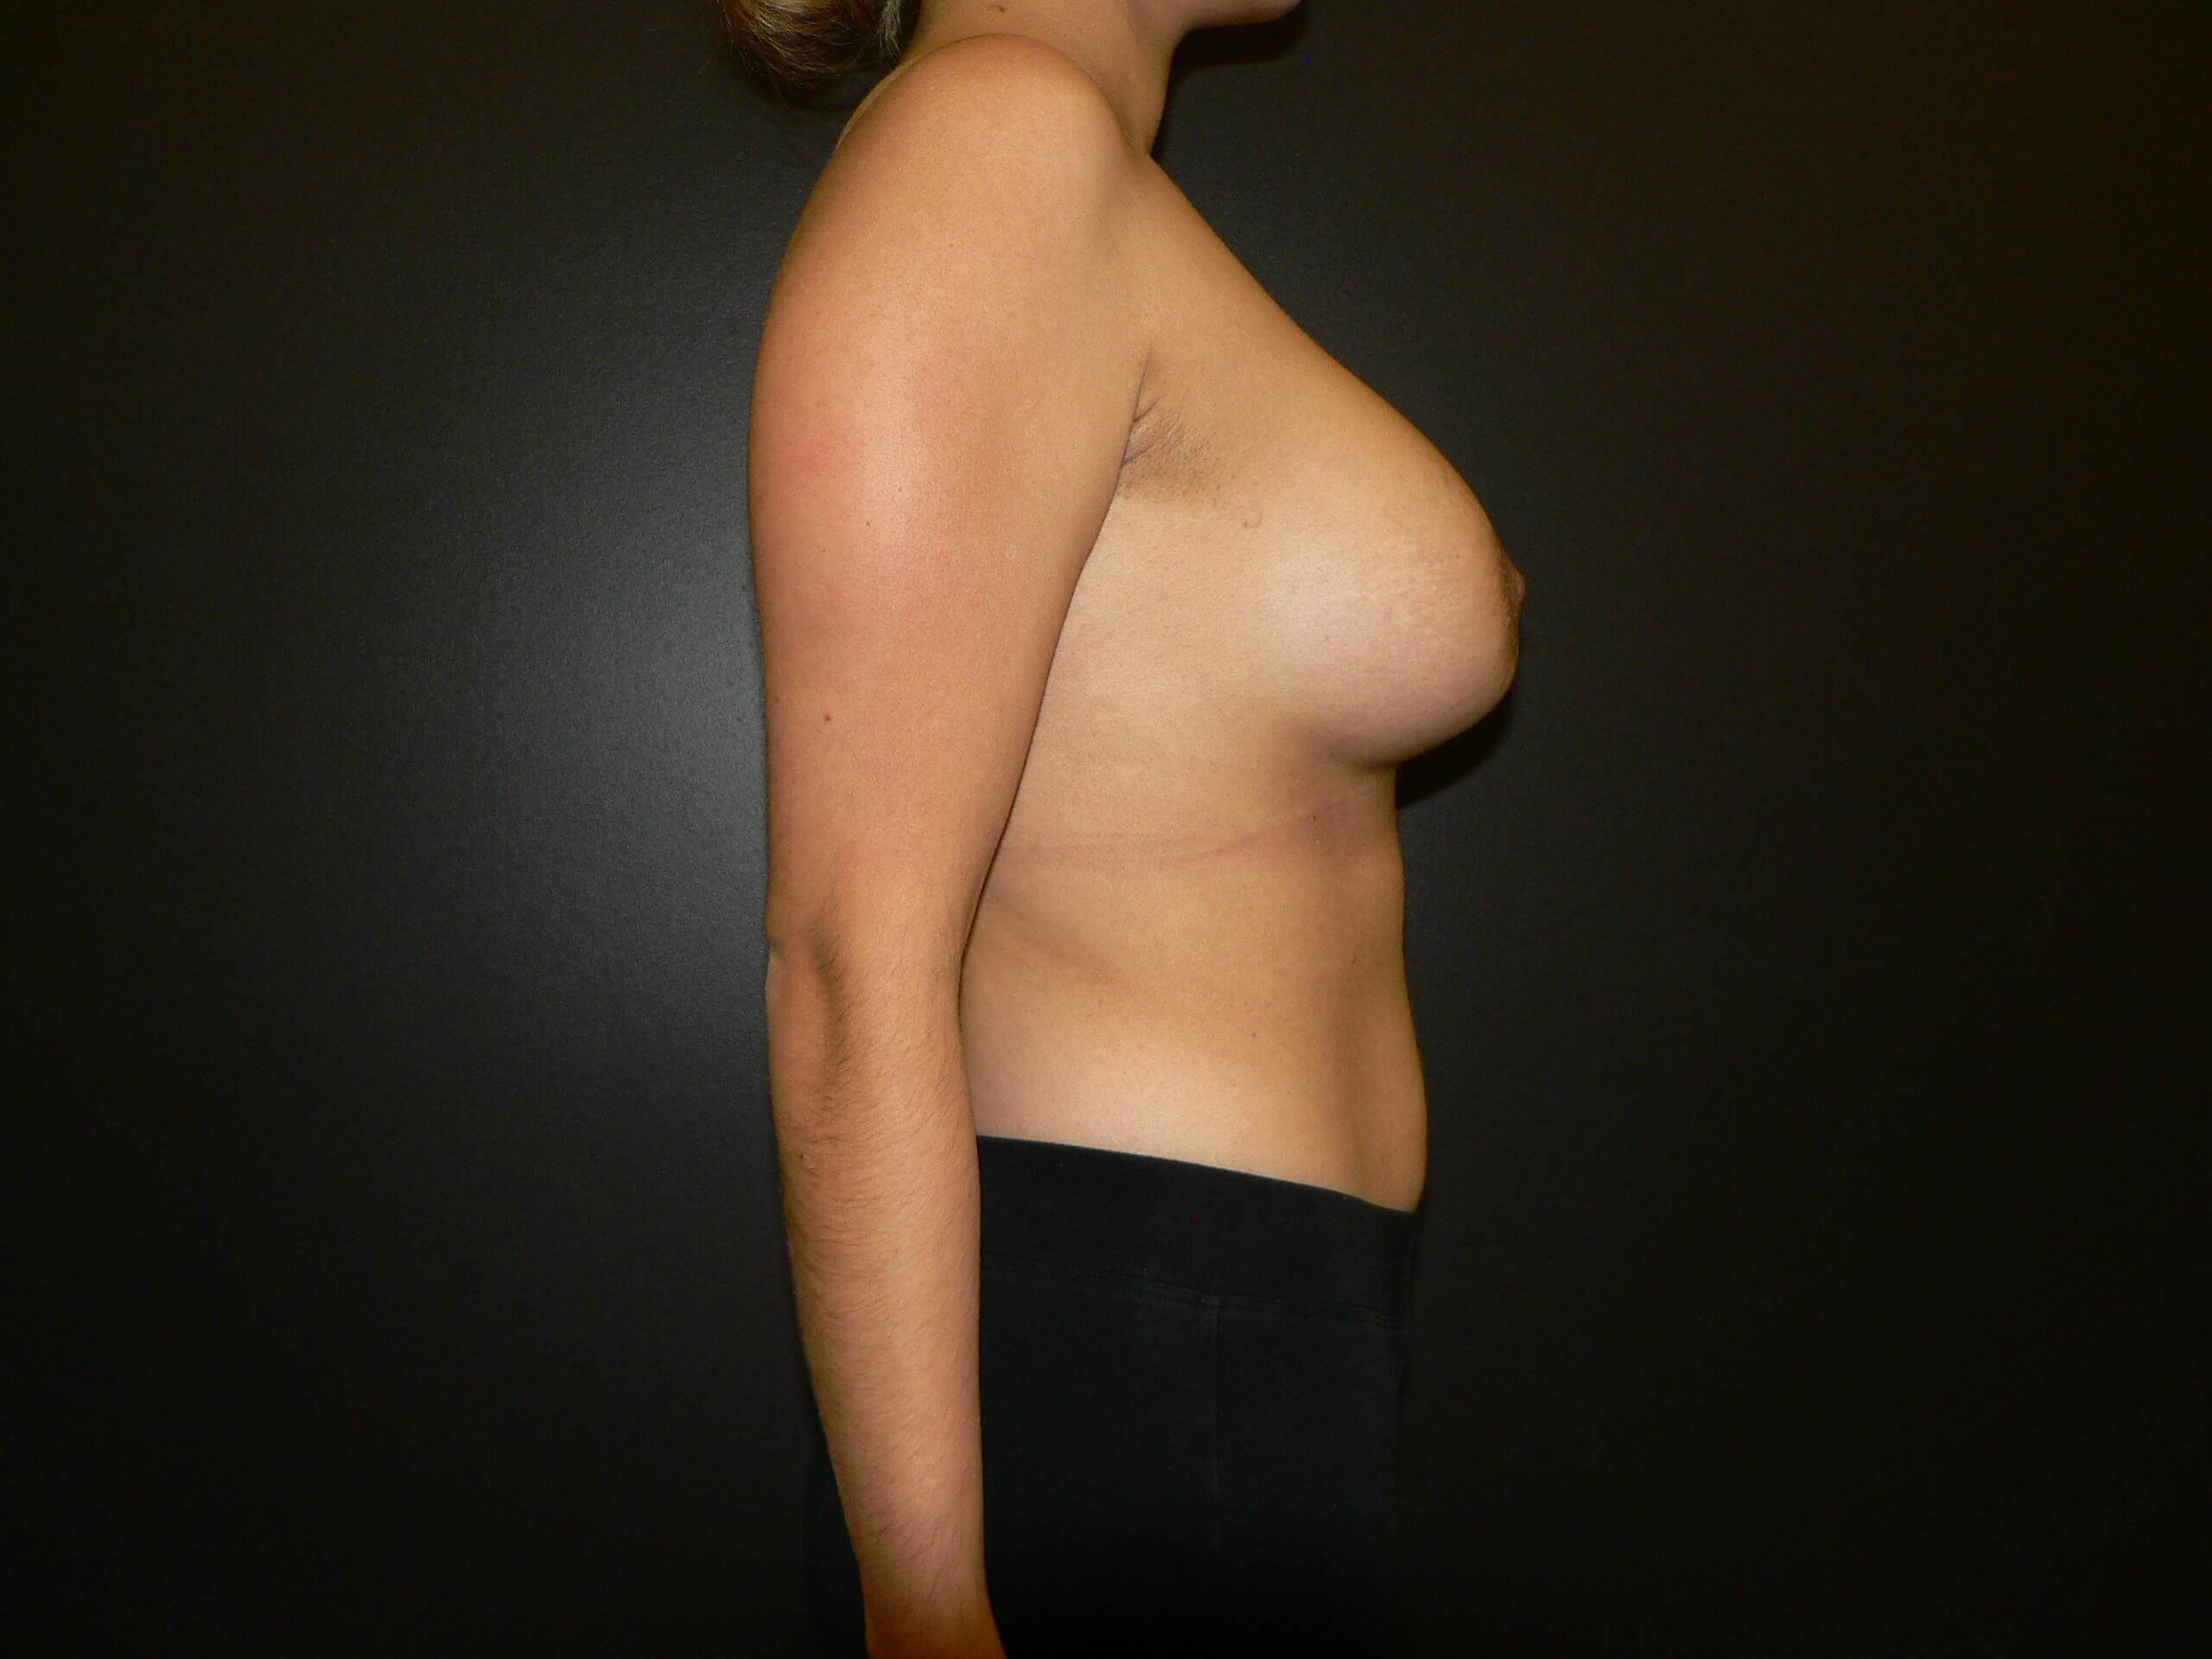 Breast Implants and Lifting After